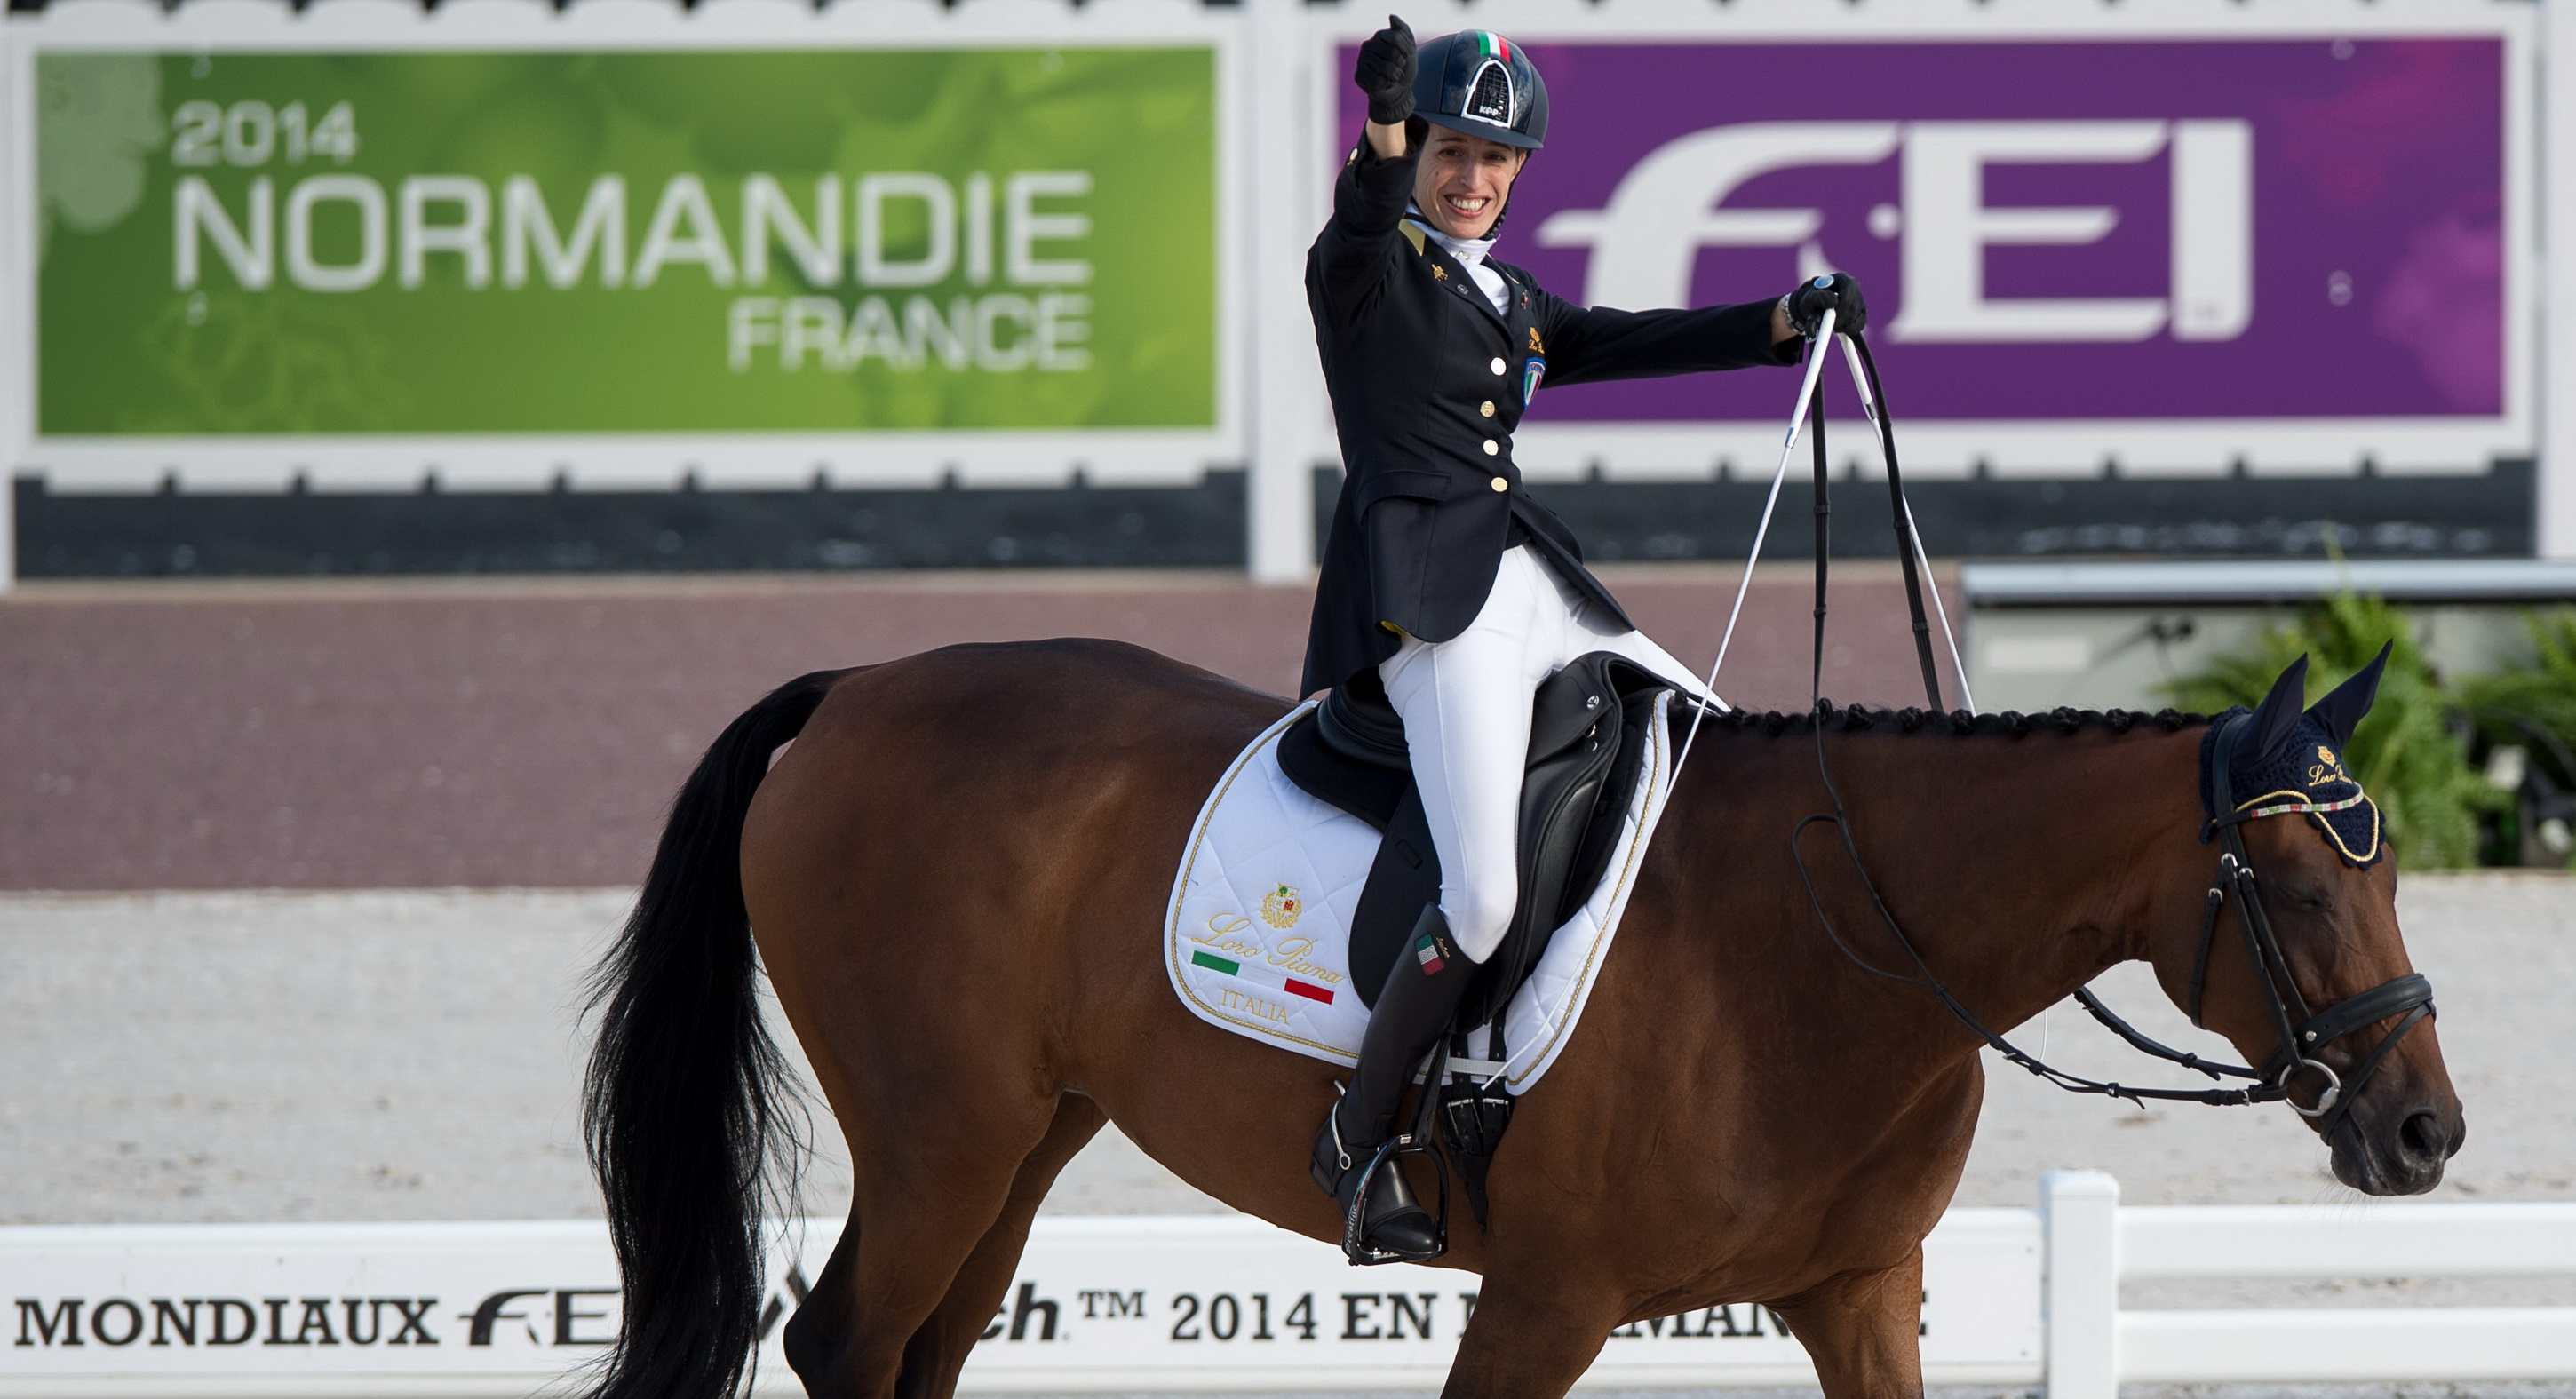 Sara Morganti with Royal Delight scored a thrilling top spot at today's Round 1 Grade Ia team competition at the World Equestrian Games ©FEI